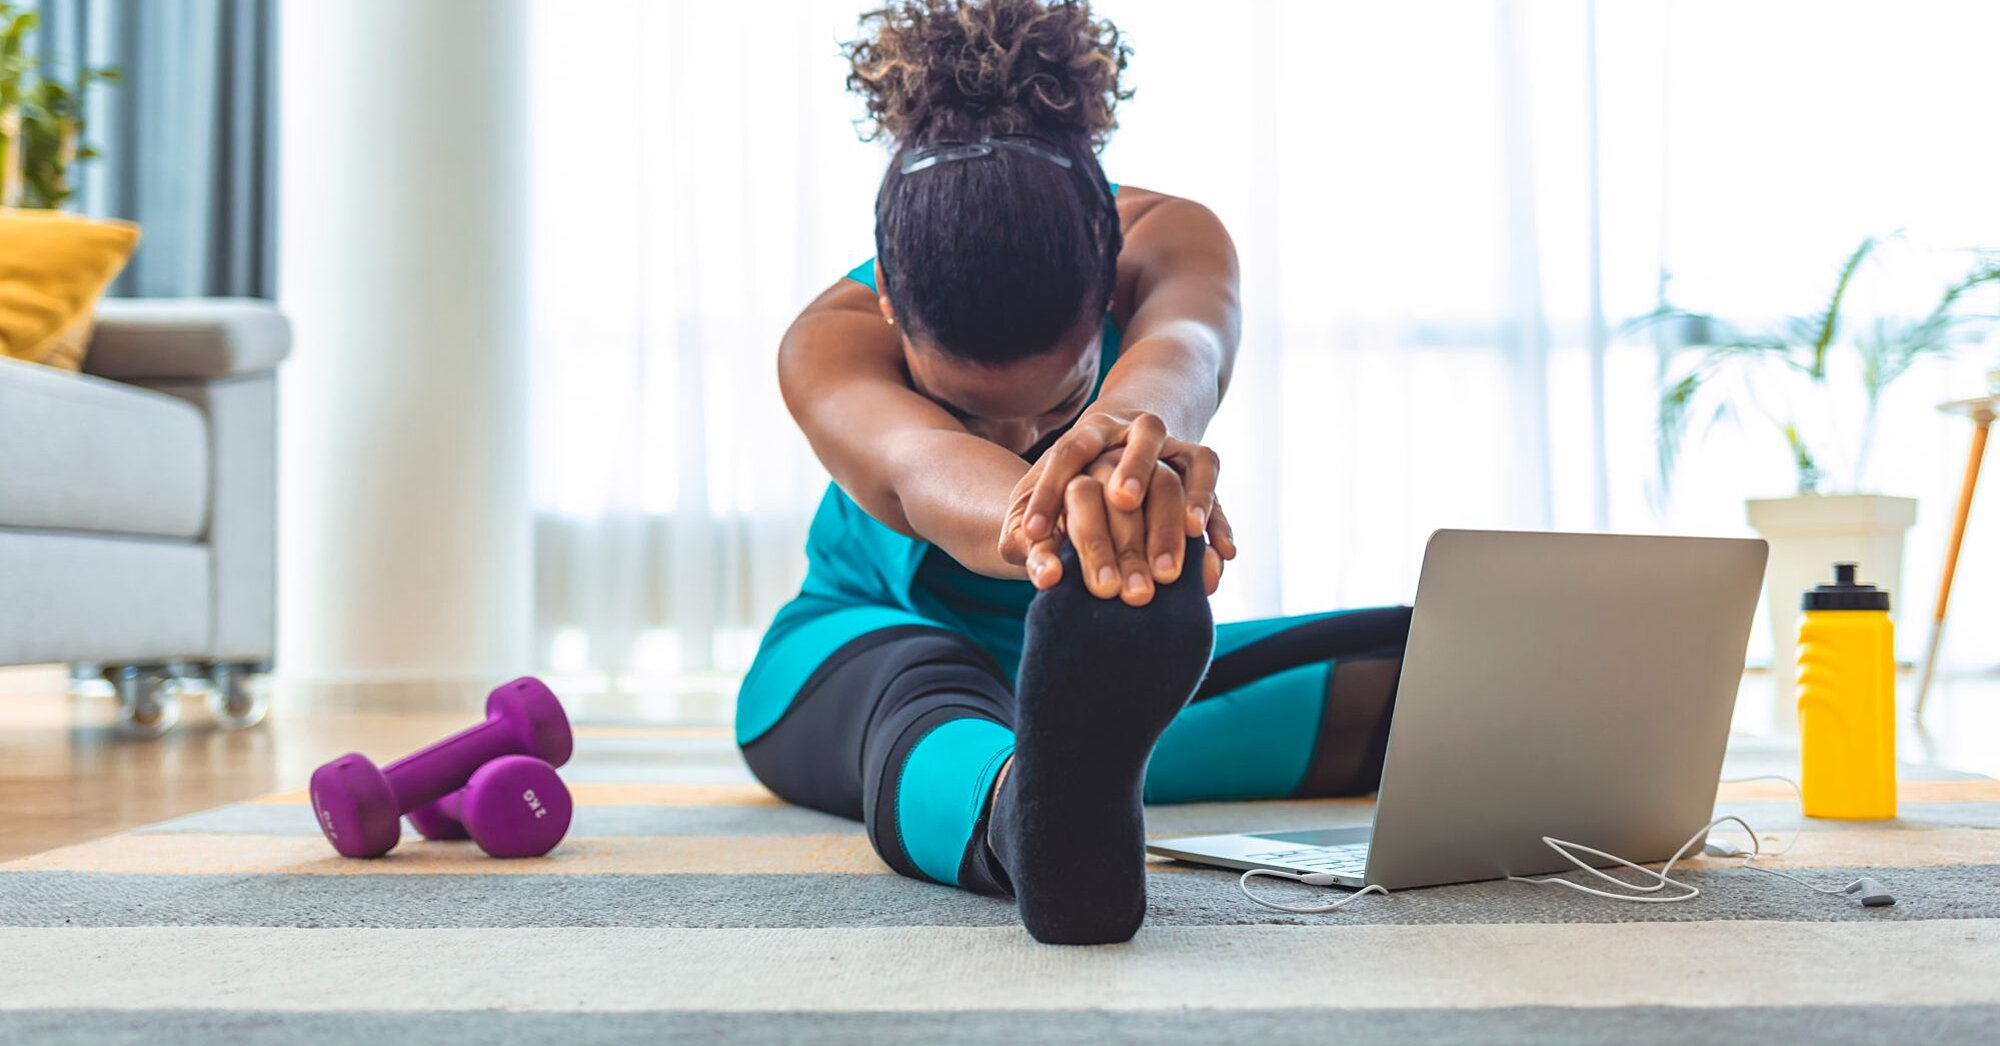 10 Must-Follow Strategies for Preventing Injuries While Working Out at Home